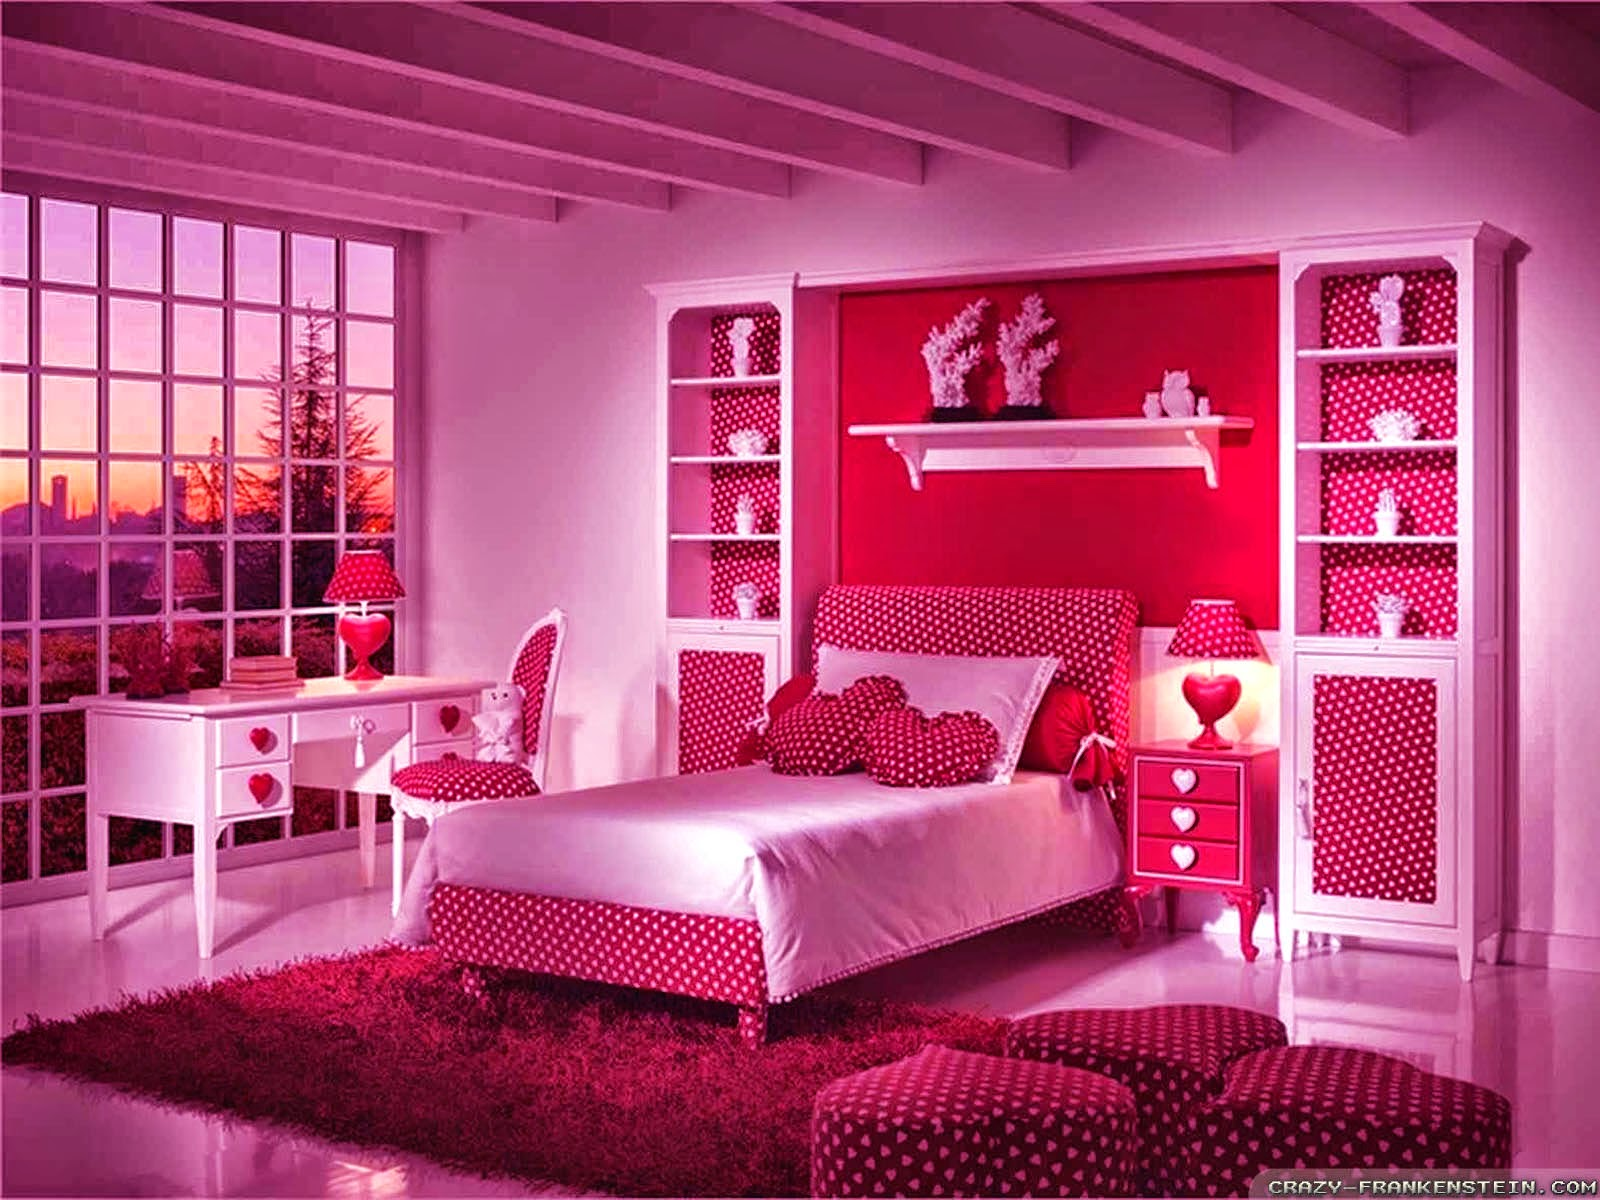 Heart Bedroom Decorating Ideas Entertainment News